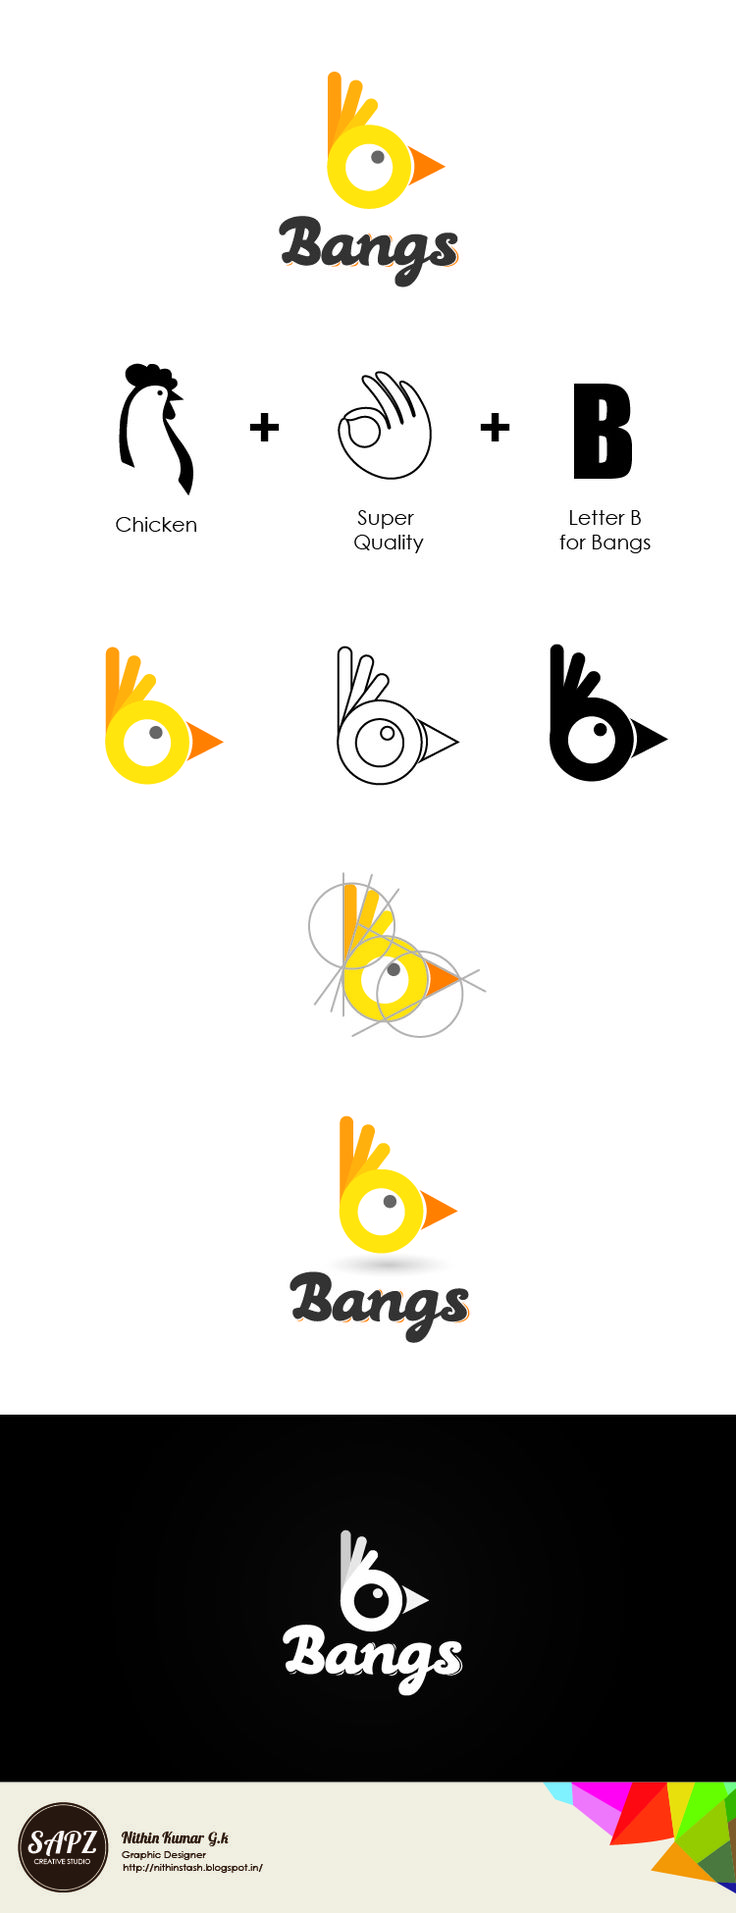 Bangs Fried Chicken Logo tryout Design                                                                                                                                                                                 More